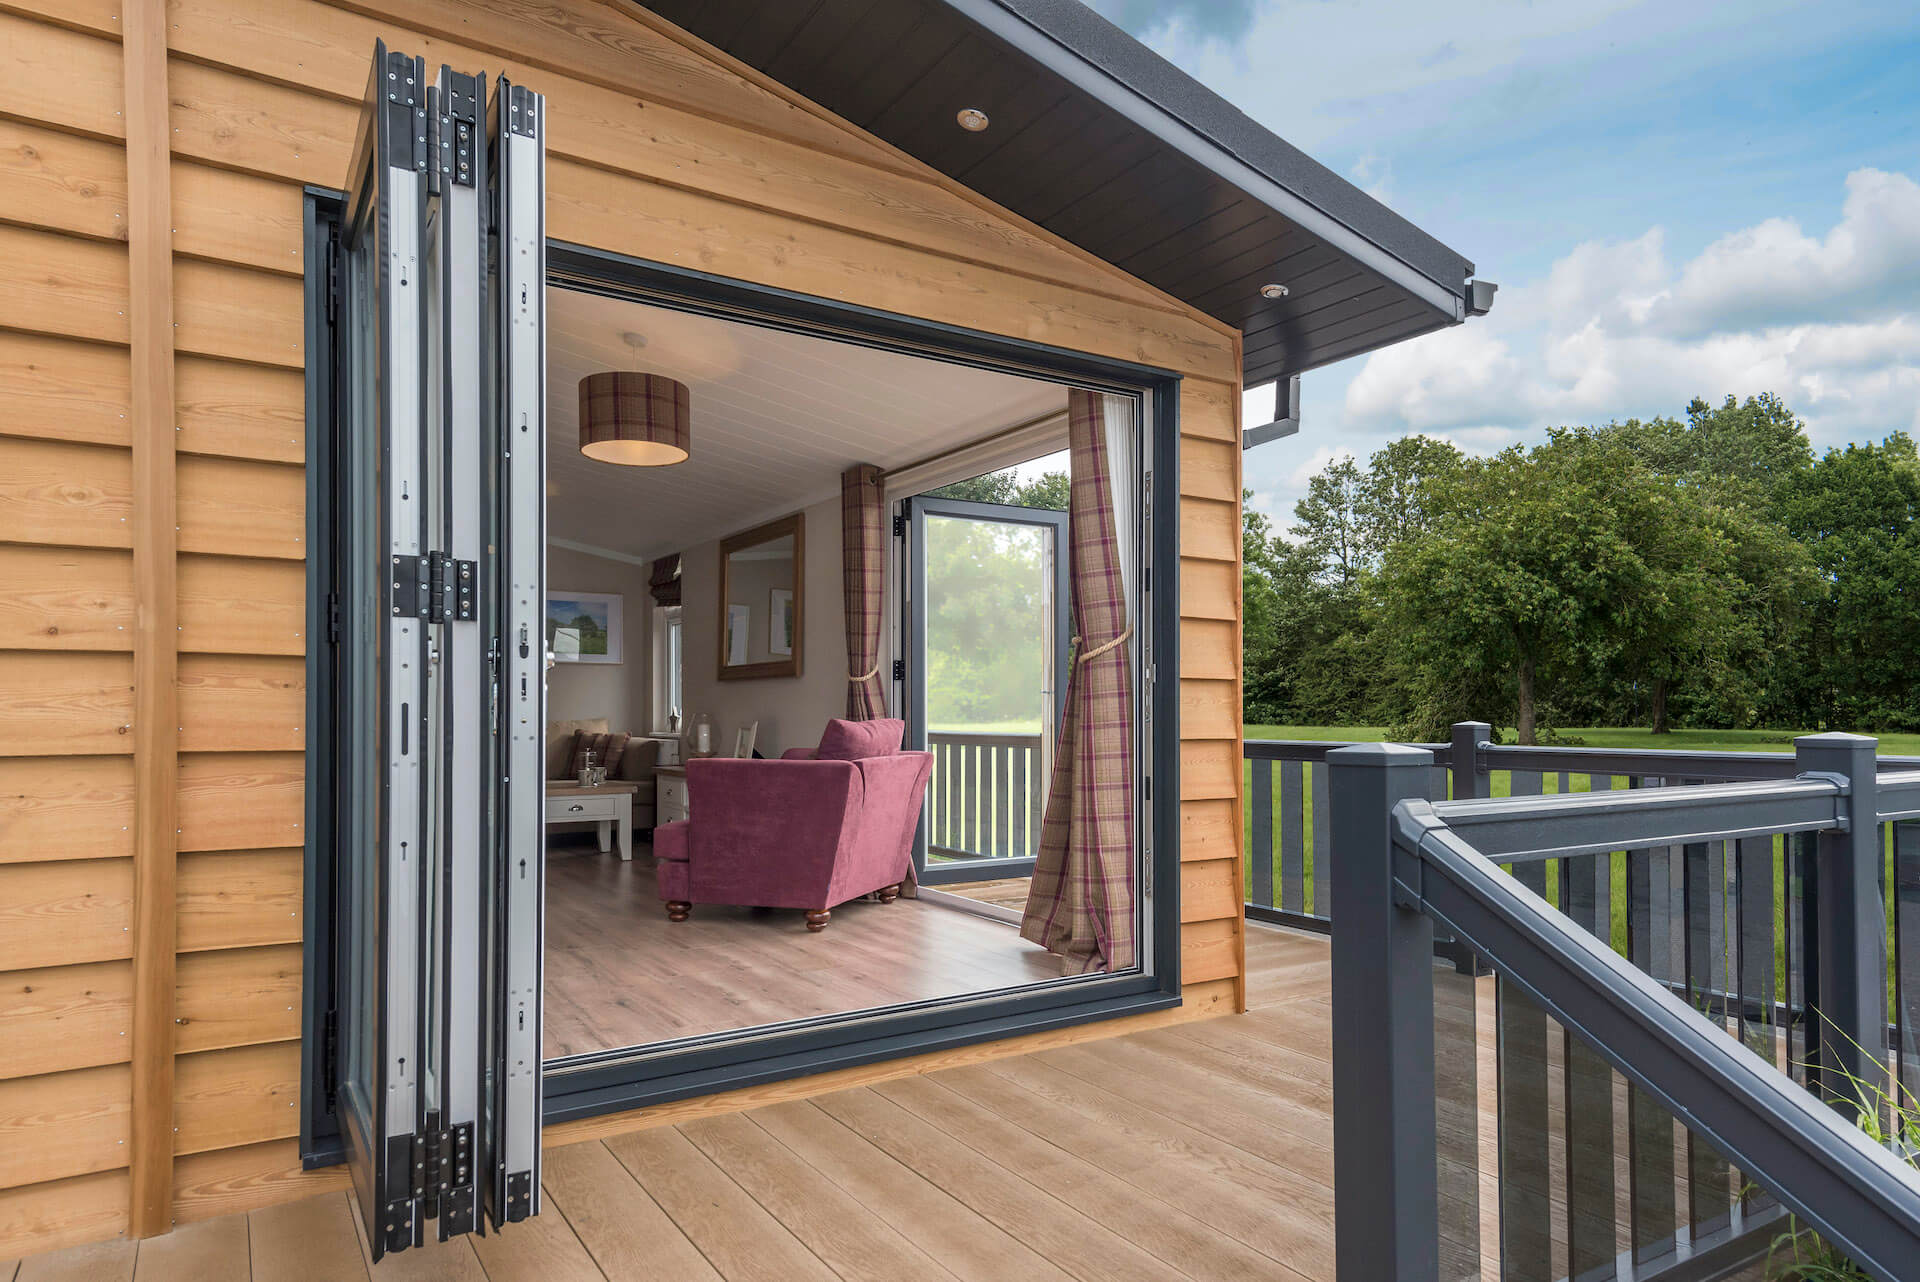 Wessex-Allure-Luxury-Lodge-Bi-folds